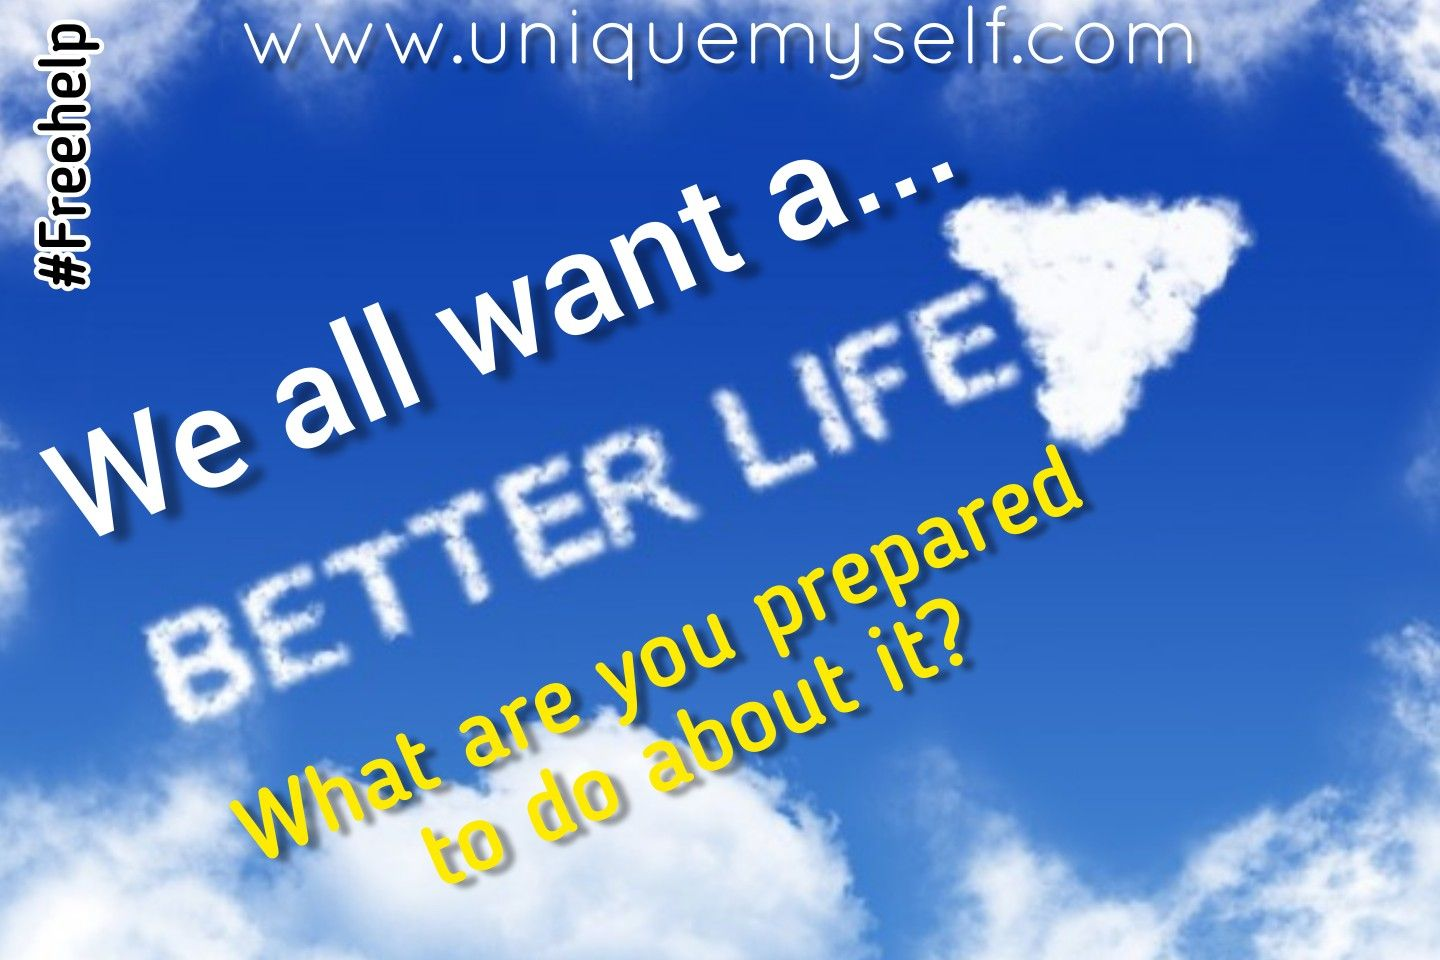 We all talk about having a better life, but how many of us actually do something about it. What are you prepared to do to improve your life situation right now?  #improveyourlife #betterlife #actnow #nevergiveup